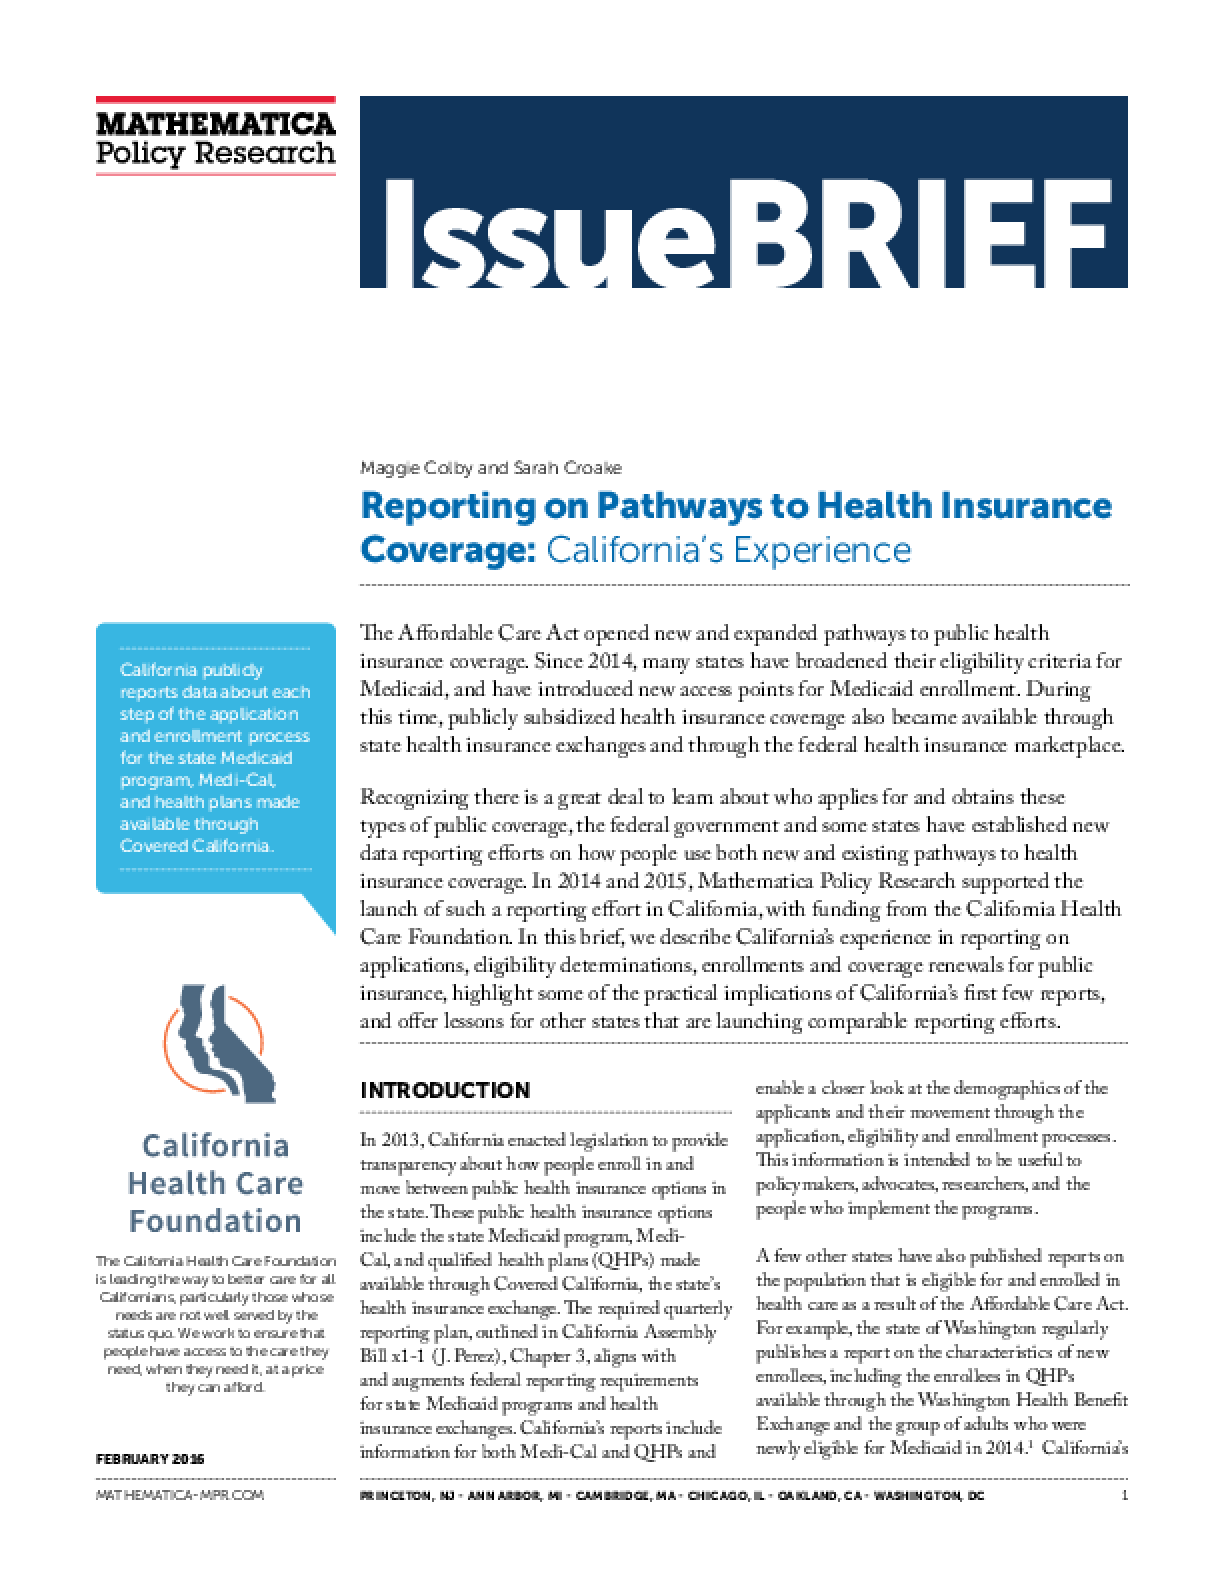 Reporting on Pathways to Health Insurance Coverage: California's Experience